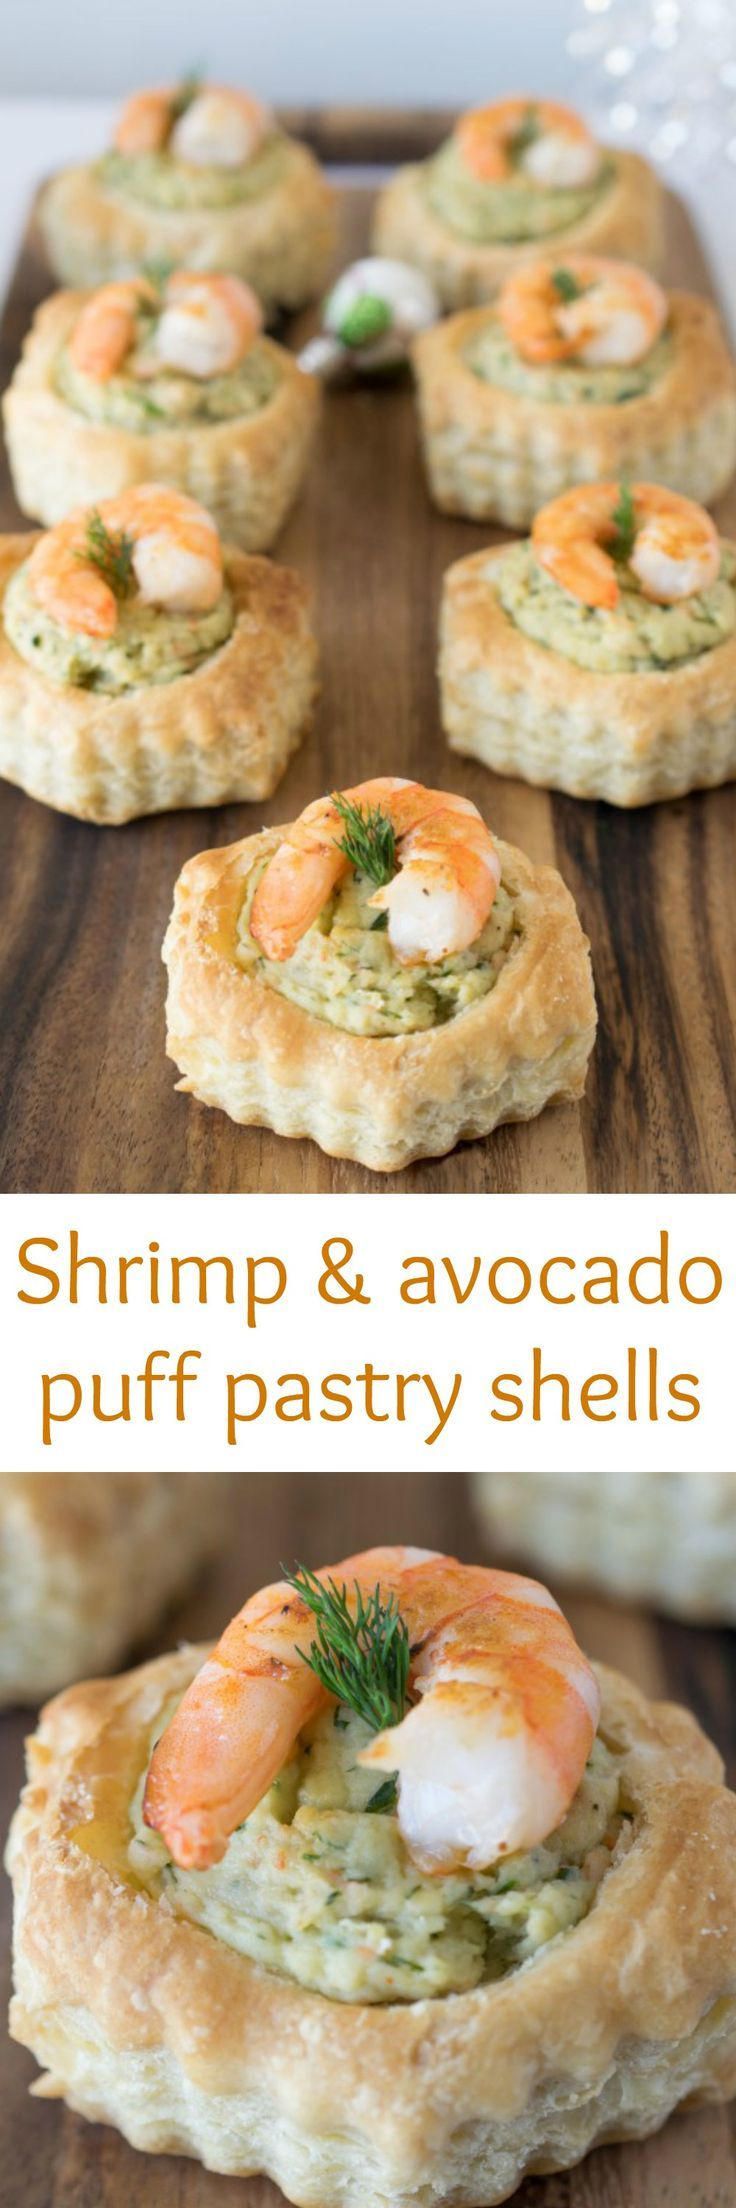 25 best ideas about lunch buffet on pinterest sandwich for Canape pastry shells